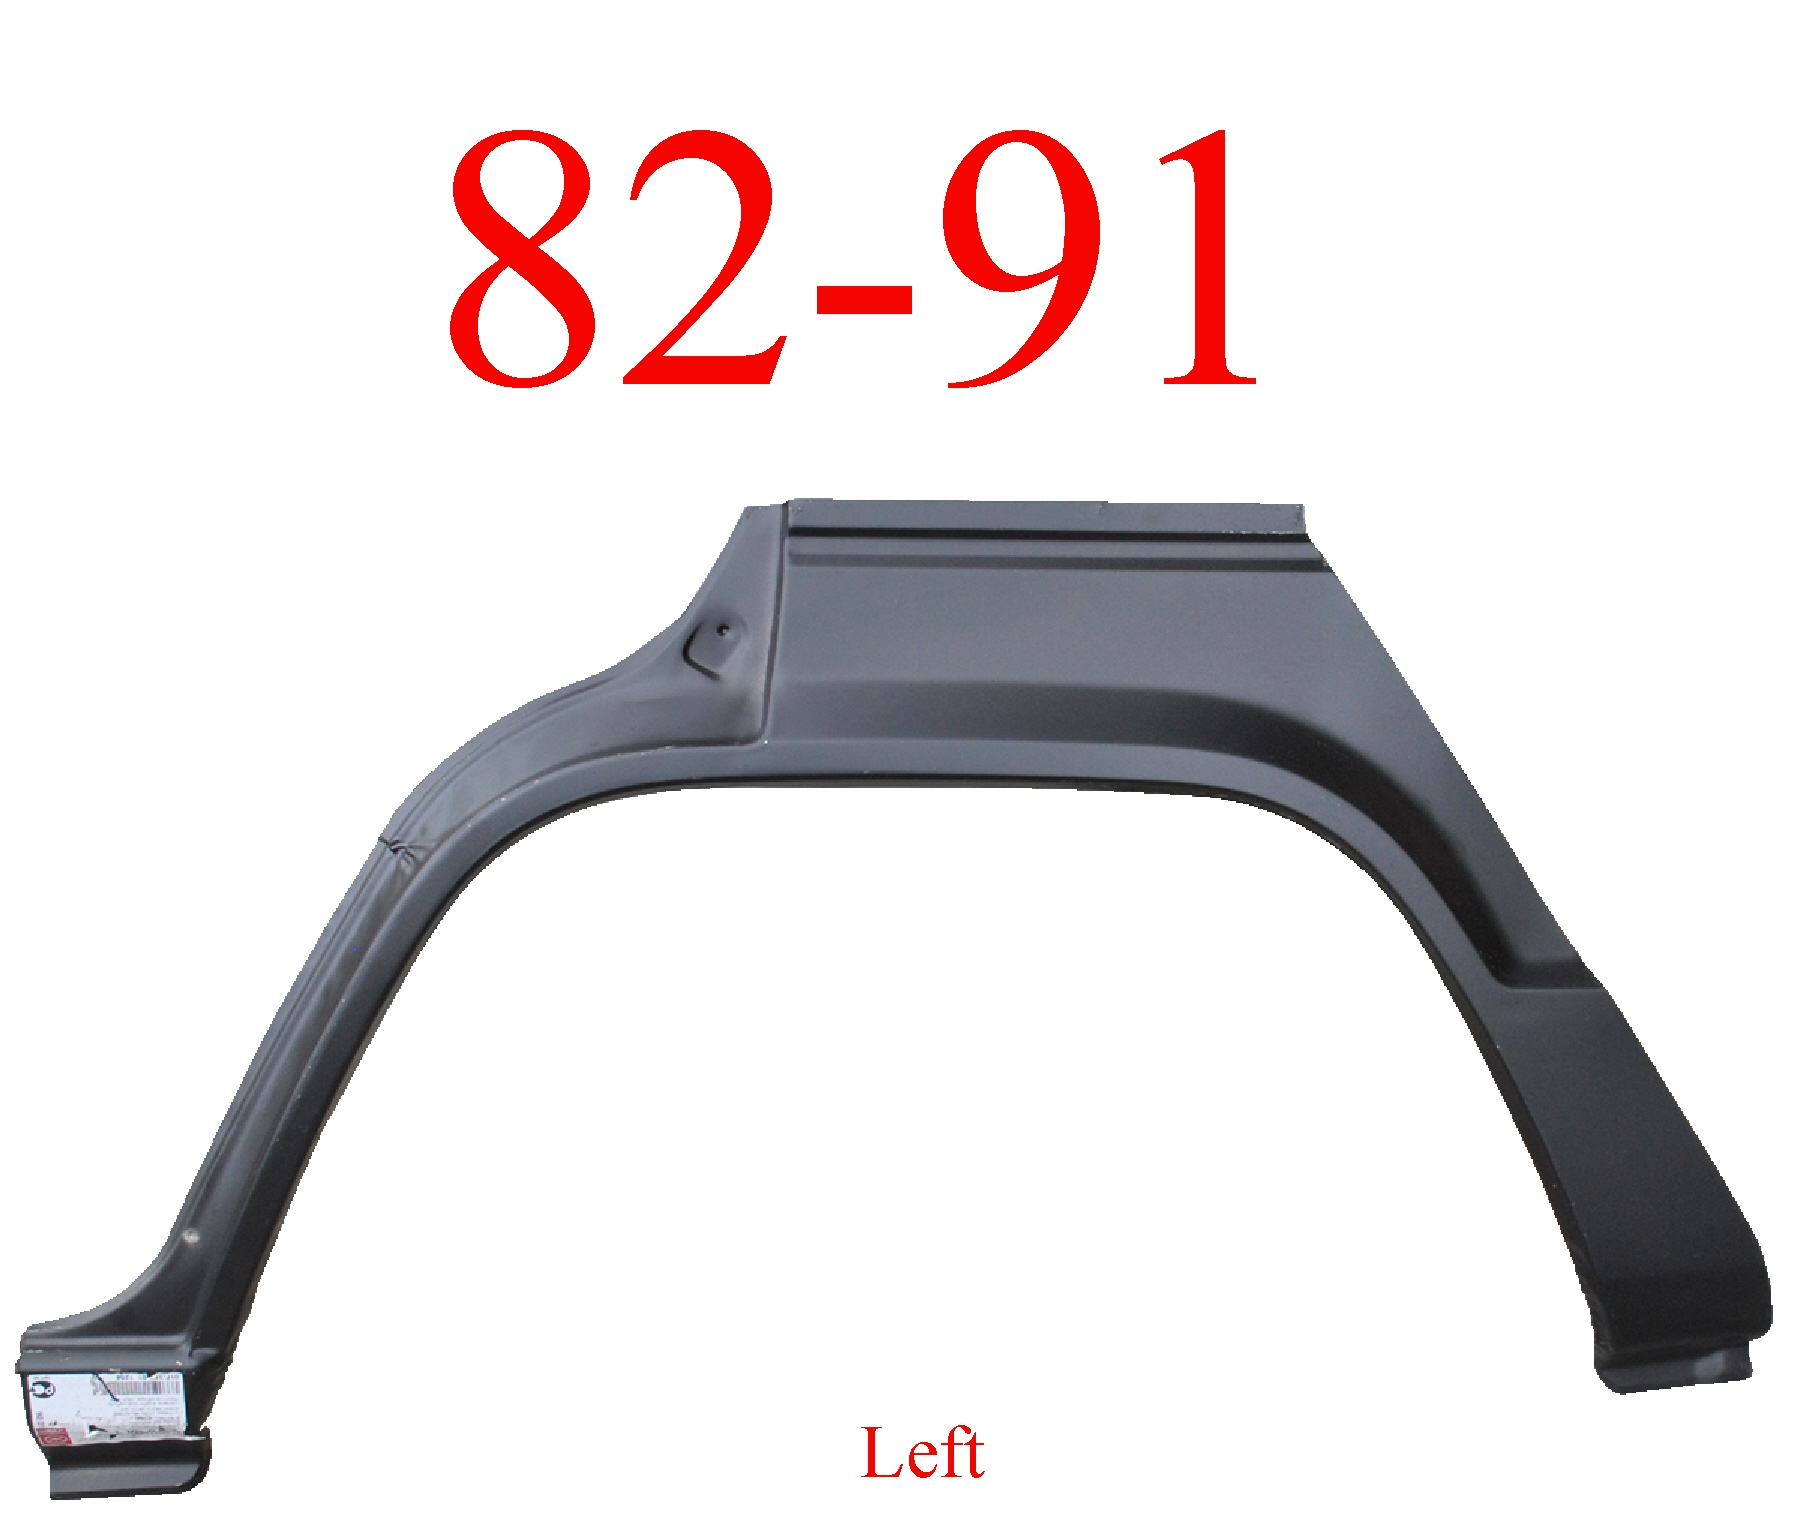 82-91 Mitsubishi Montero 4Dr Left Rear Upper Arch & Dog Leg